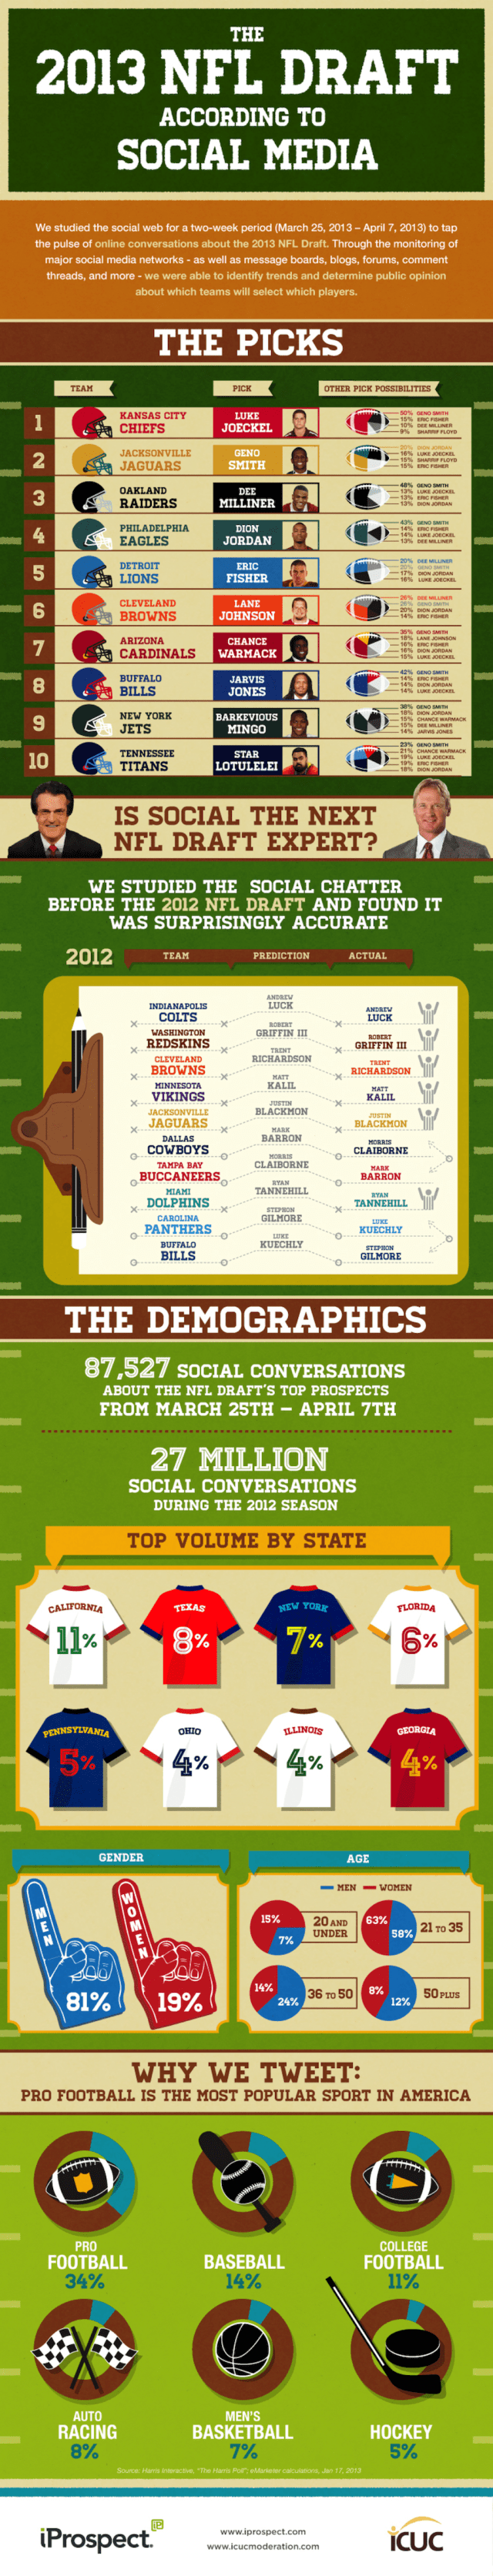 Social Media NFL Draft 2013 Prediction Infographic via iProspect